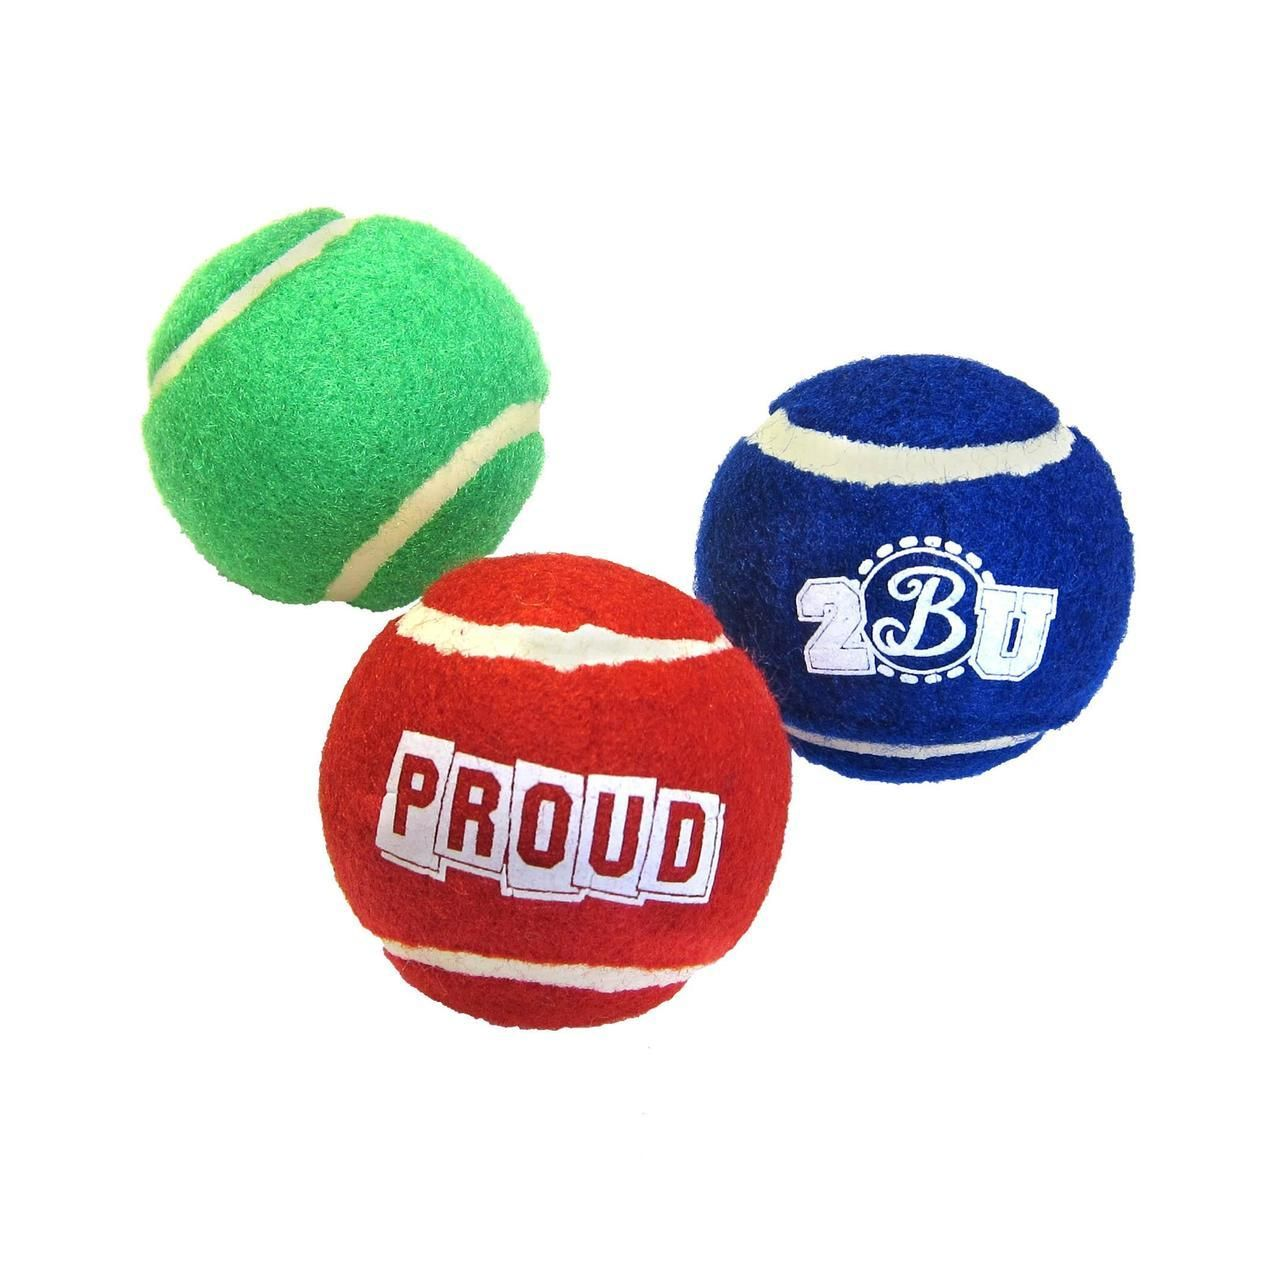 Tennis Balls For Dogs Tennis Balls For Dogs Pet Toys Cool Pets